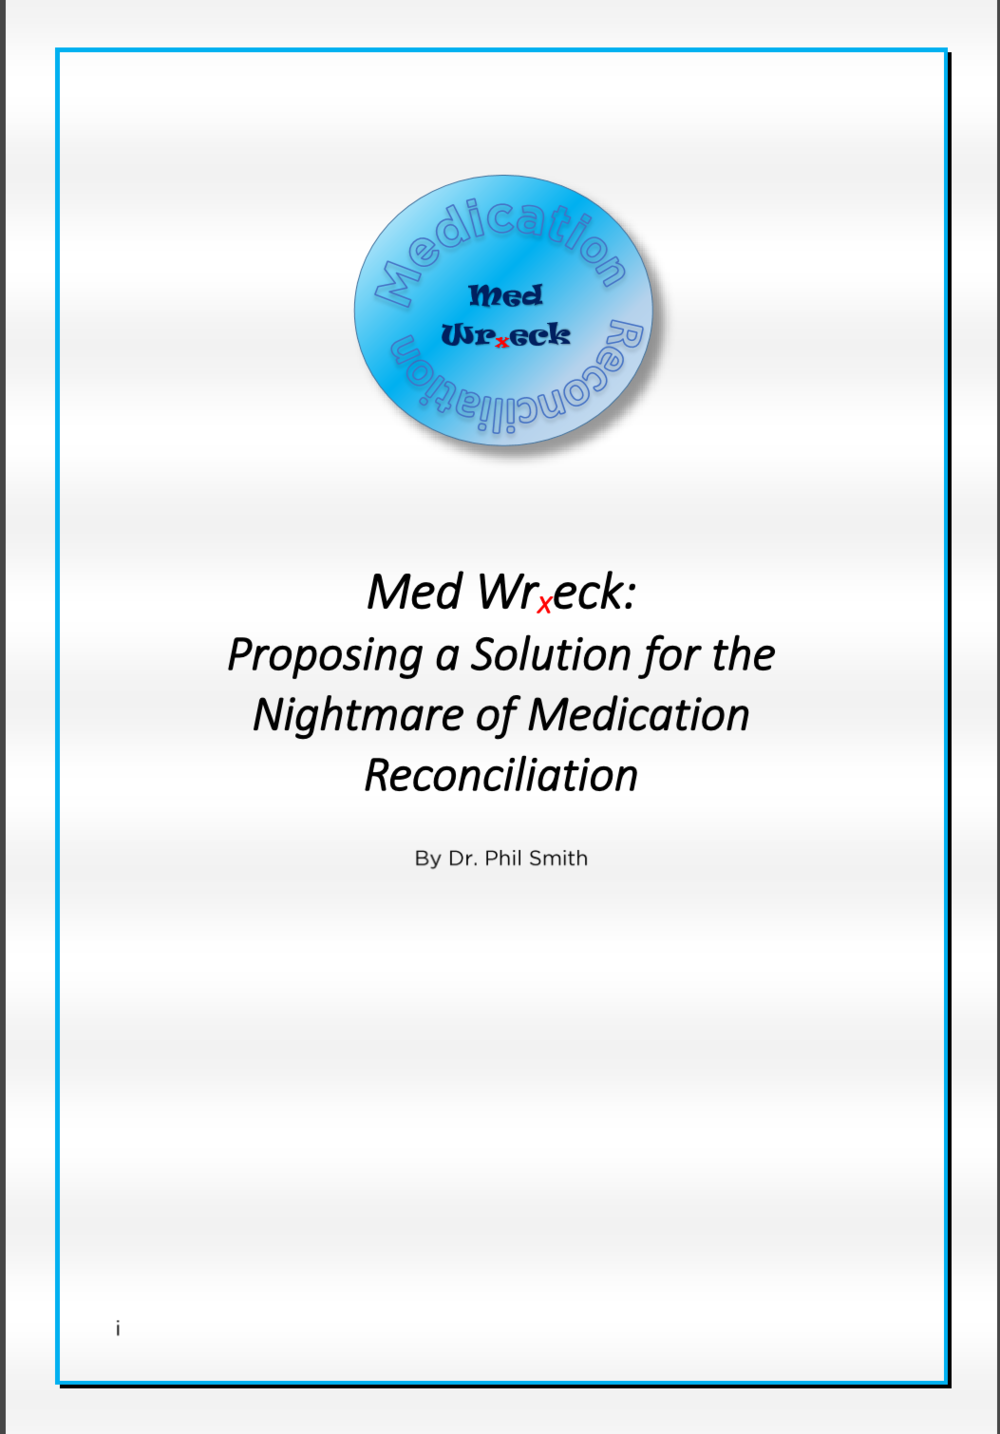 Dr. Smith authored Med Wreck: Proposing a Solution for the Nightmare of Medication Reconciliation in 2017.  This e-Book is available exclusively for download at HealthITAccelerator.com/med-wreck.  He publishes a twice-monthly e-newsletter as well through that site. -